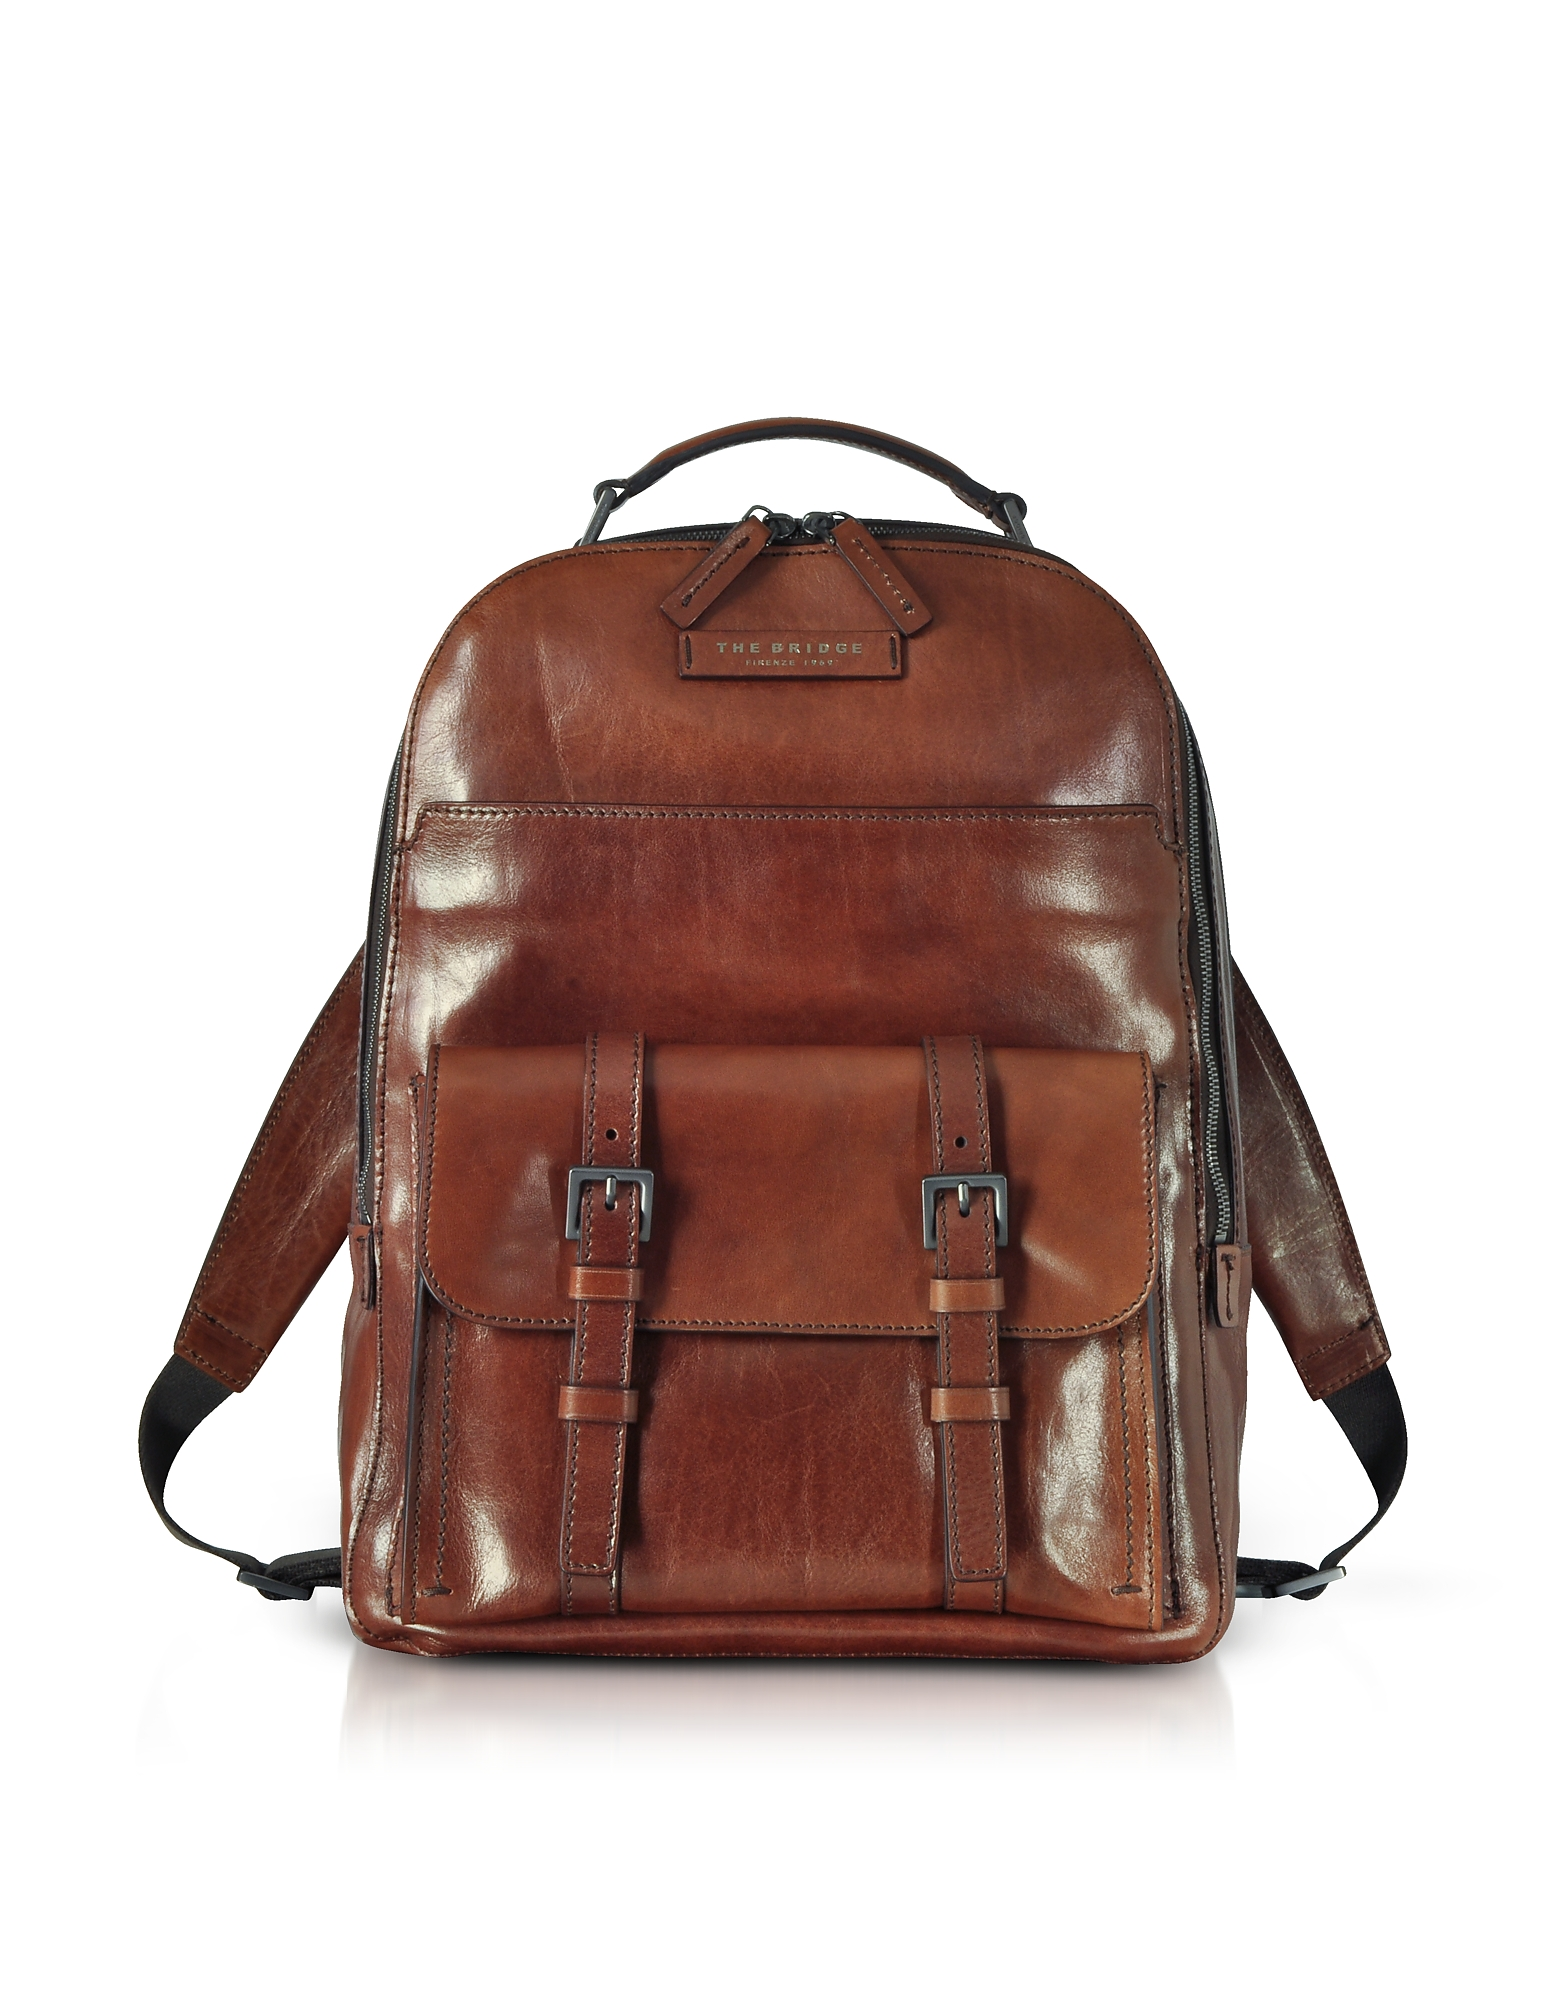 Image of The Bridge Designer Backpacks, Byron Brown Leather Men's Backpack